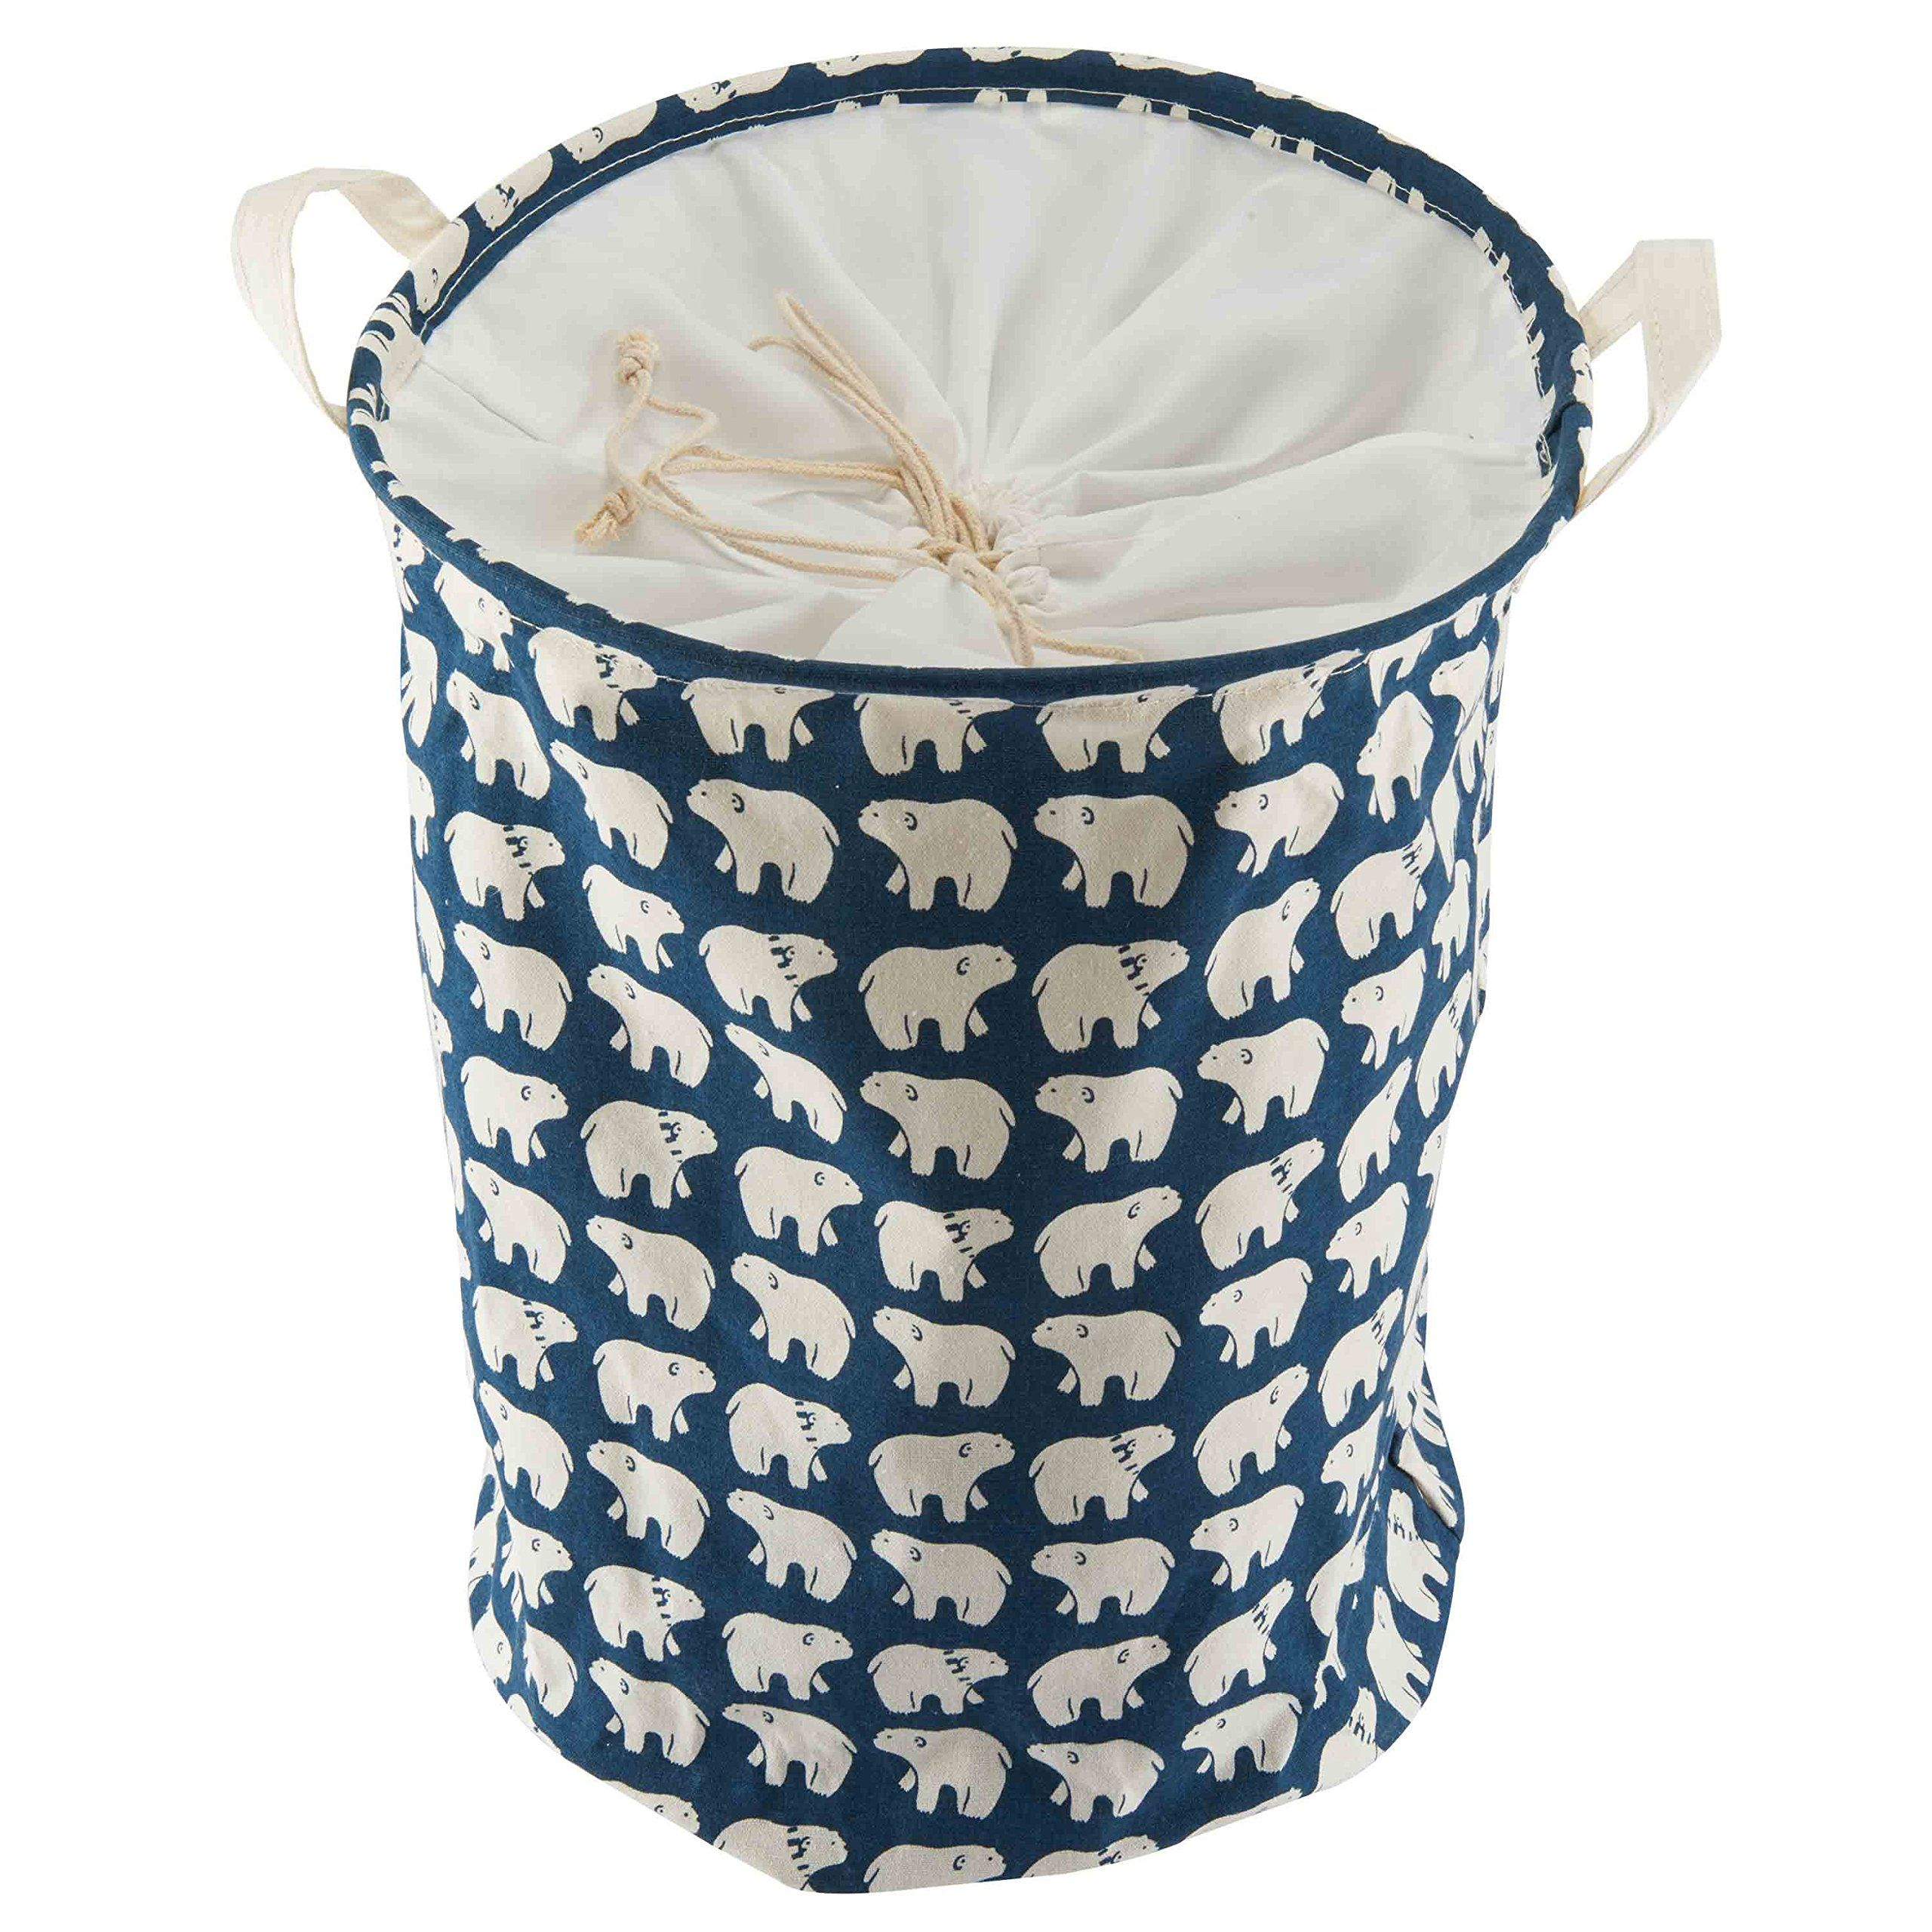 Foldable Laundry Hamper Basket Waterproof For Organizing Baby